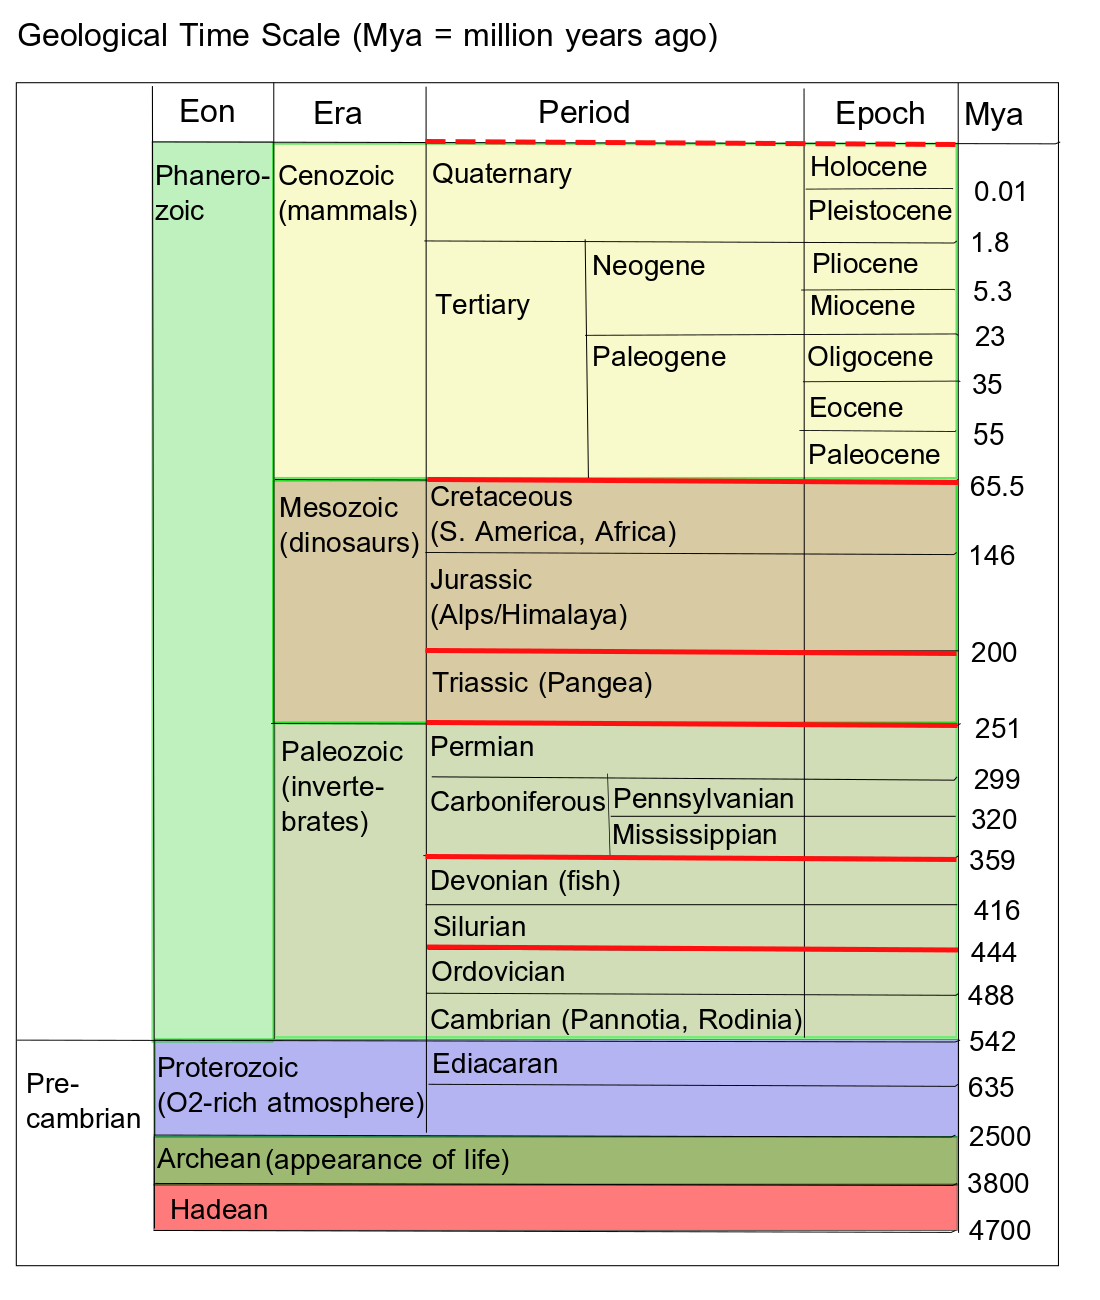 Geological time scale, by author